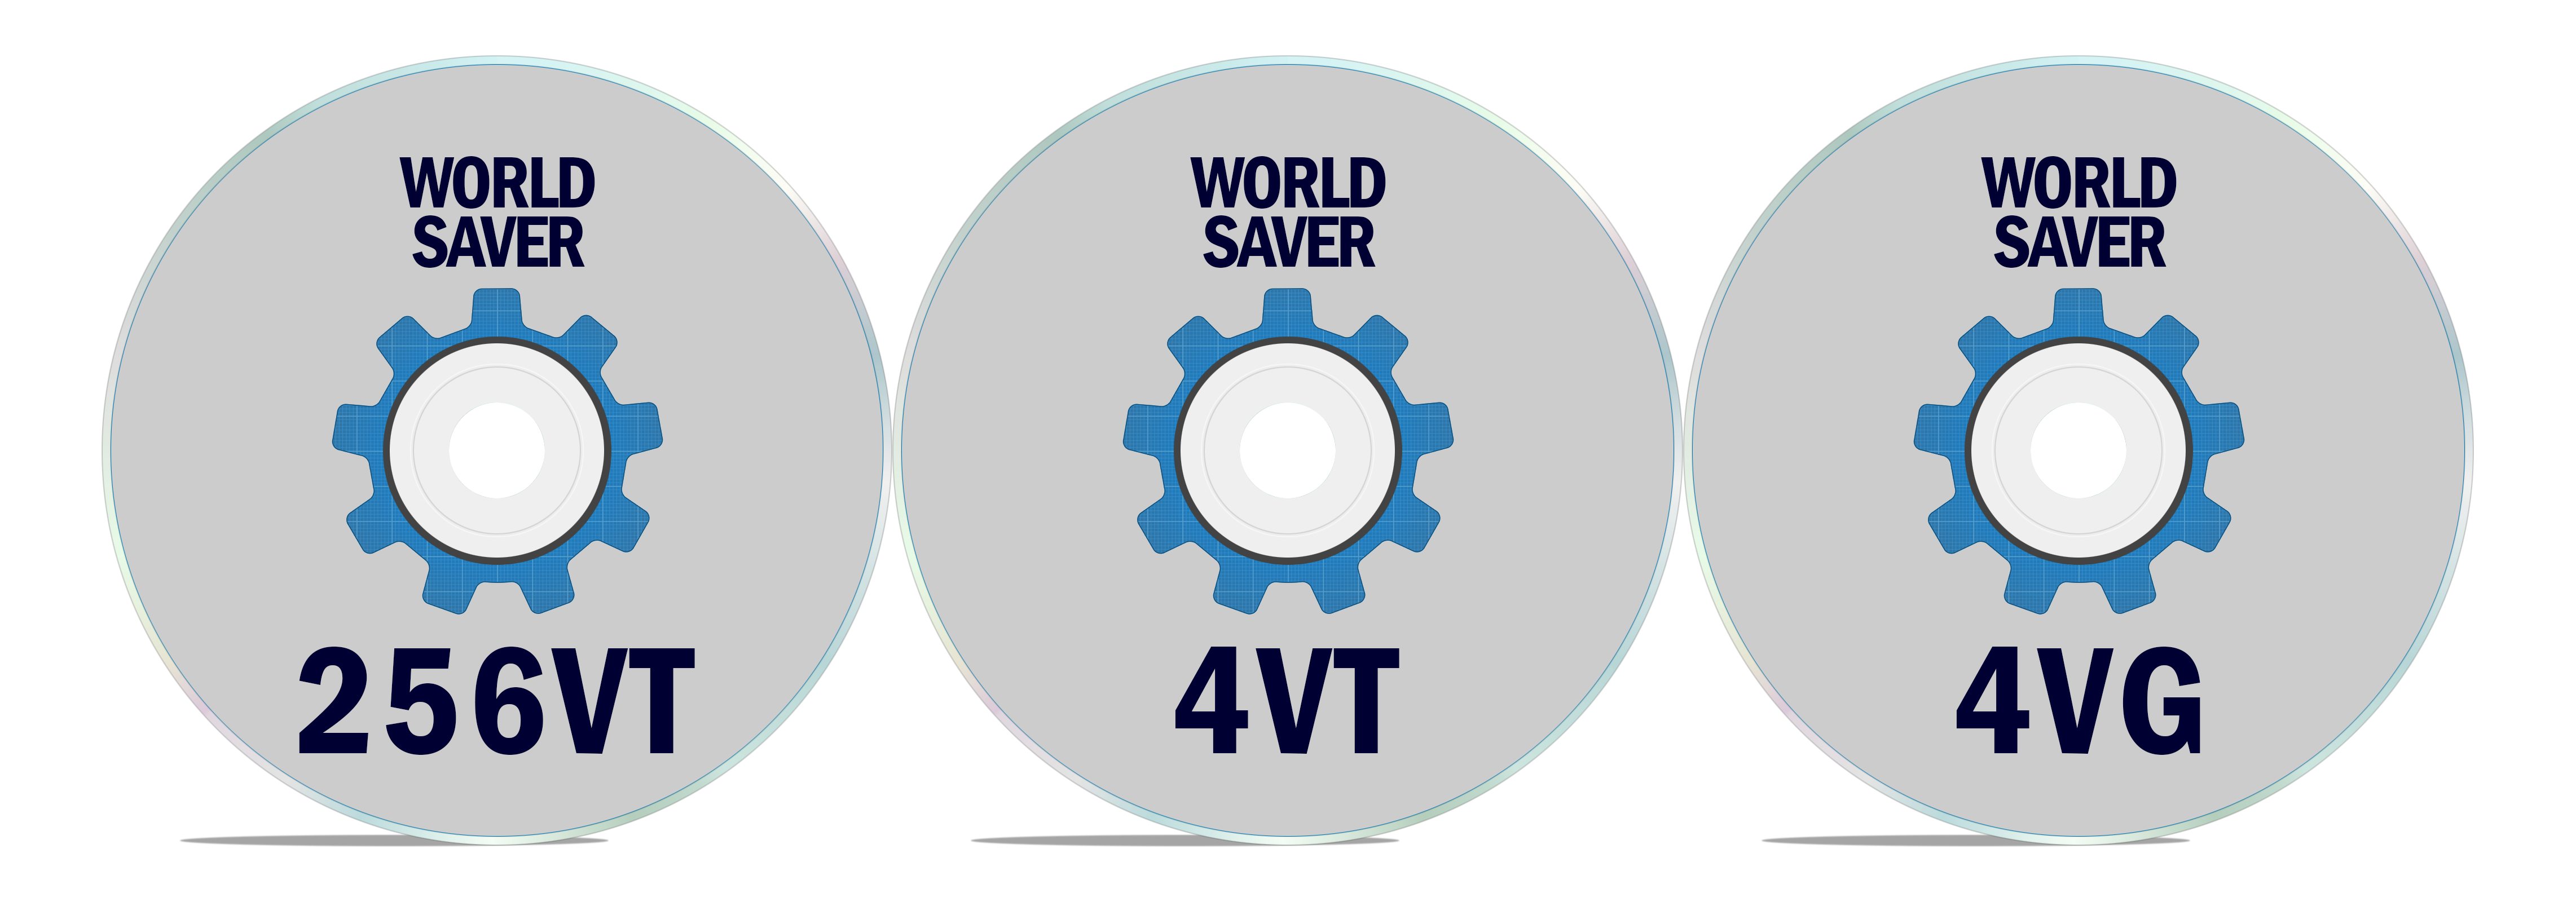 World Saver